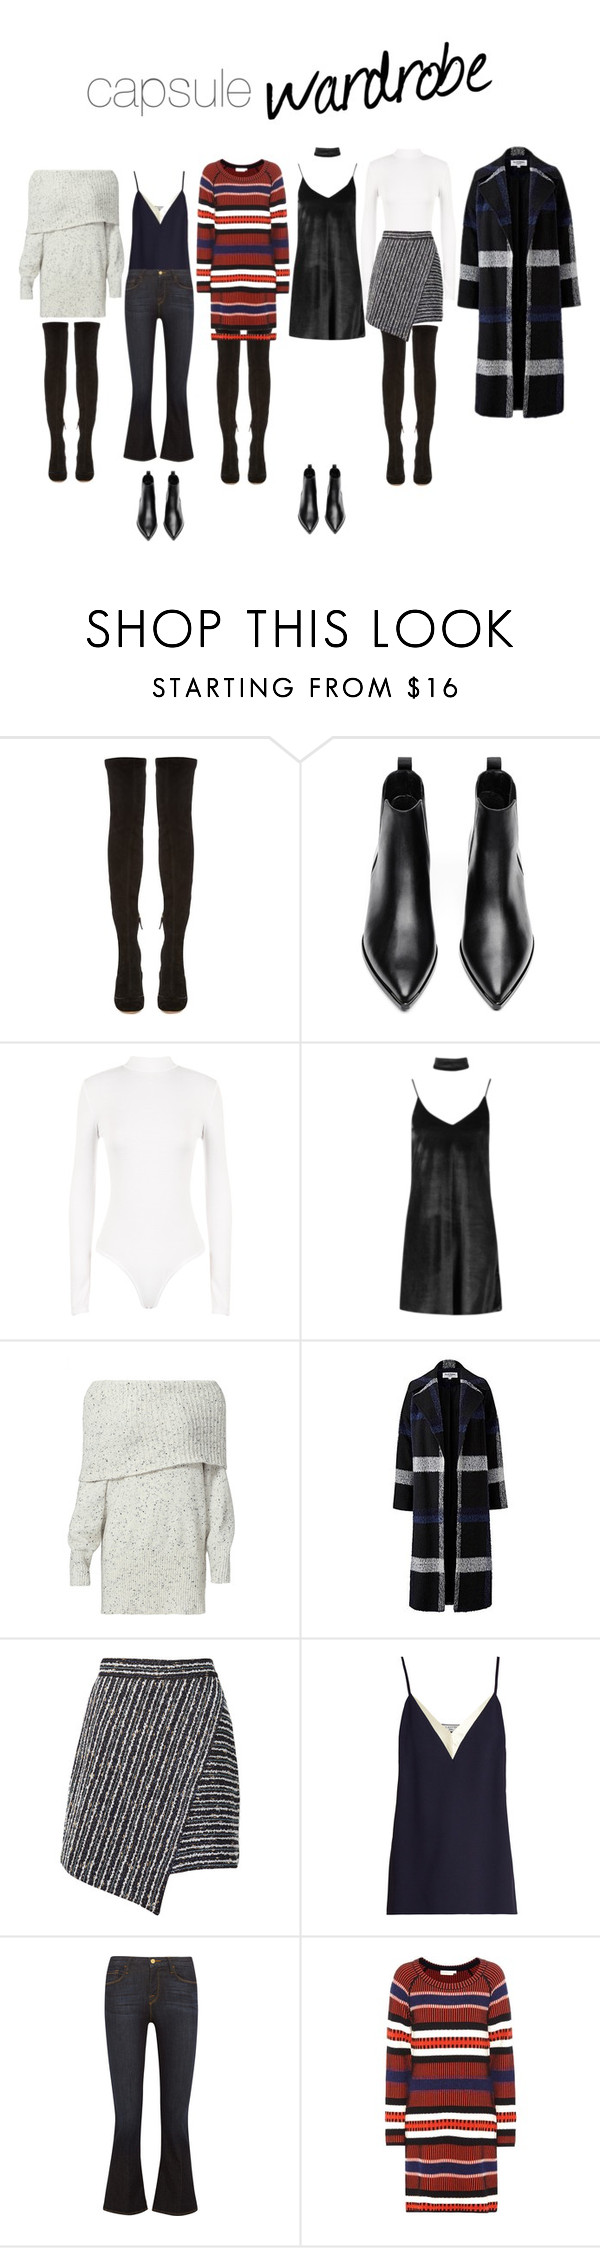 """""""NY2017 Capsule Wardrobe"""" by evefg85 on Polyvore featuring Nicholas Kirkwood, Acne Studios, WearAll, Boohoo, Joie, Helene Berman, Marco de Vincenzo, Lanvin, Frame and Tory Burch"""